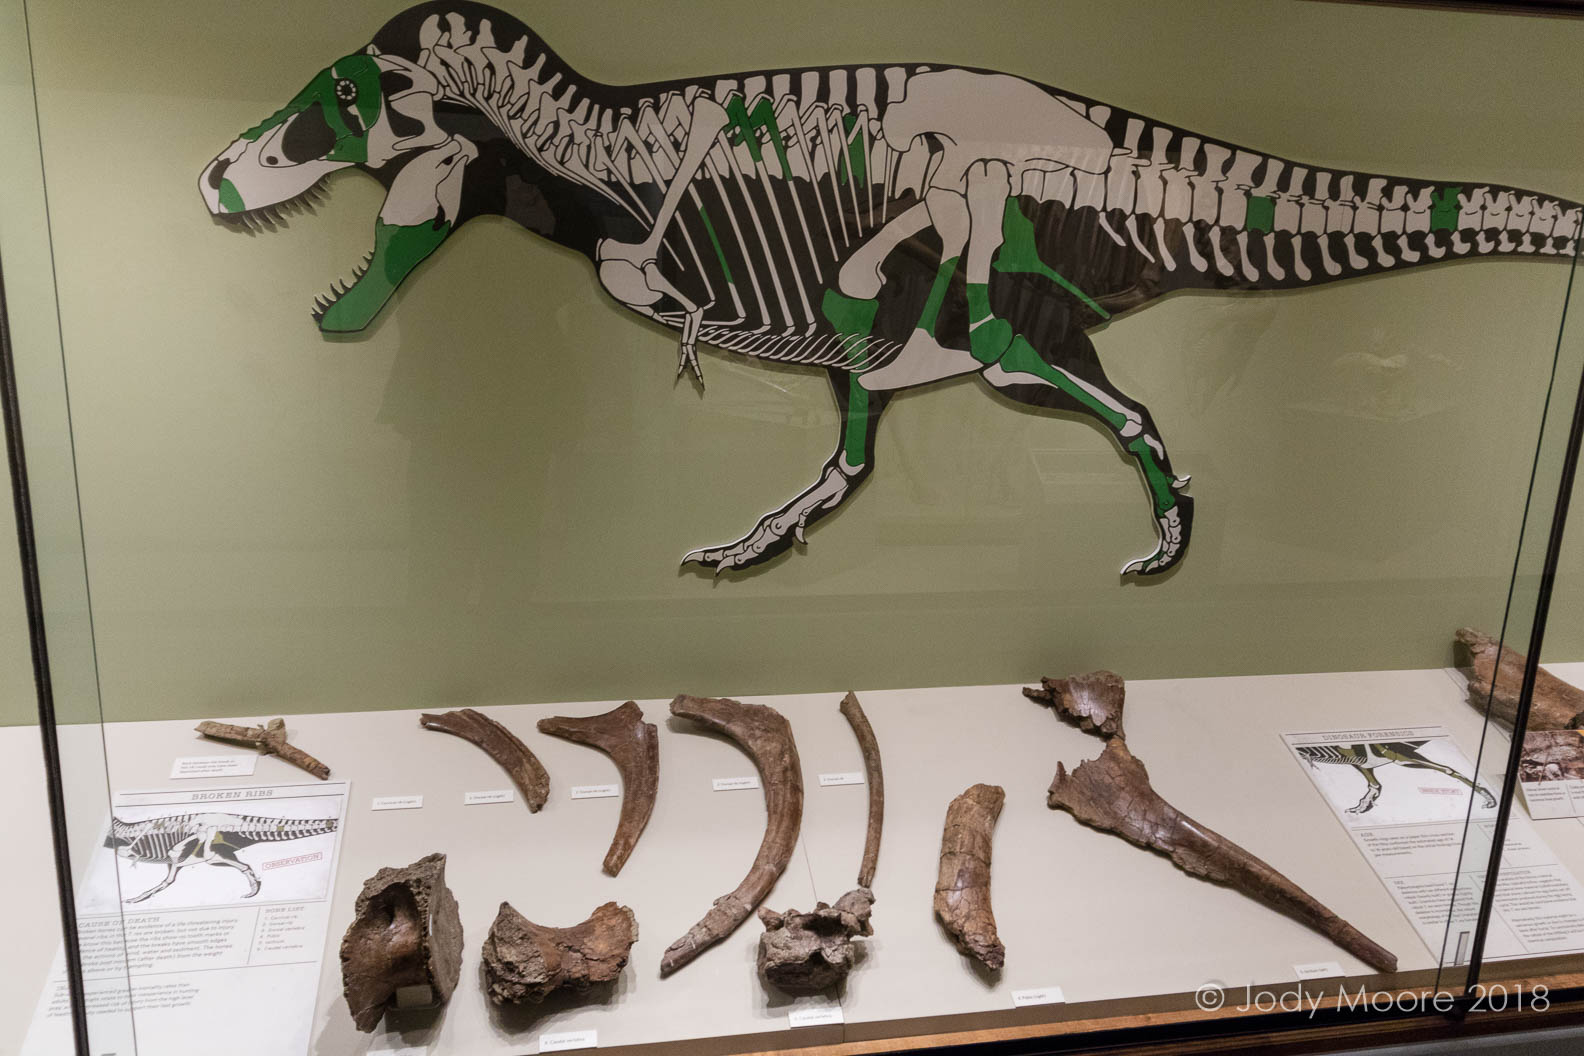 Displayed specimens of University of Kansas' Lucy T.rex, at the university's on-campus museum in Lawrence, KS. Photo taken Dec. 2017.